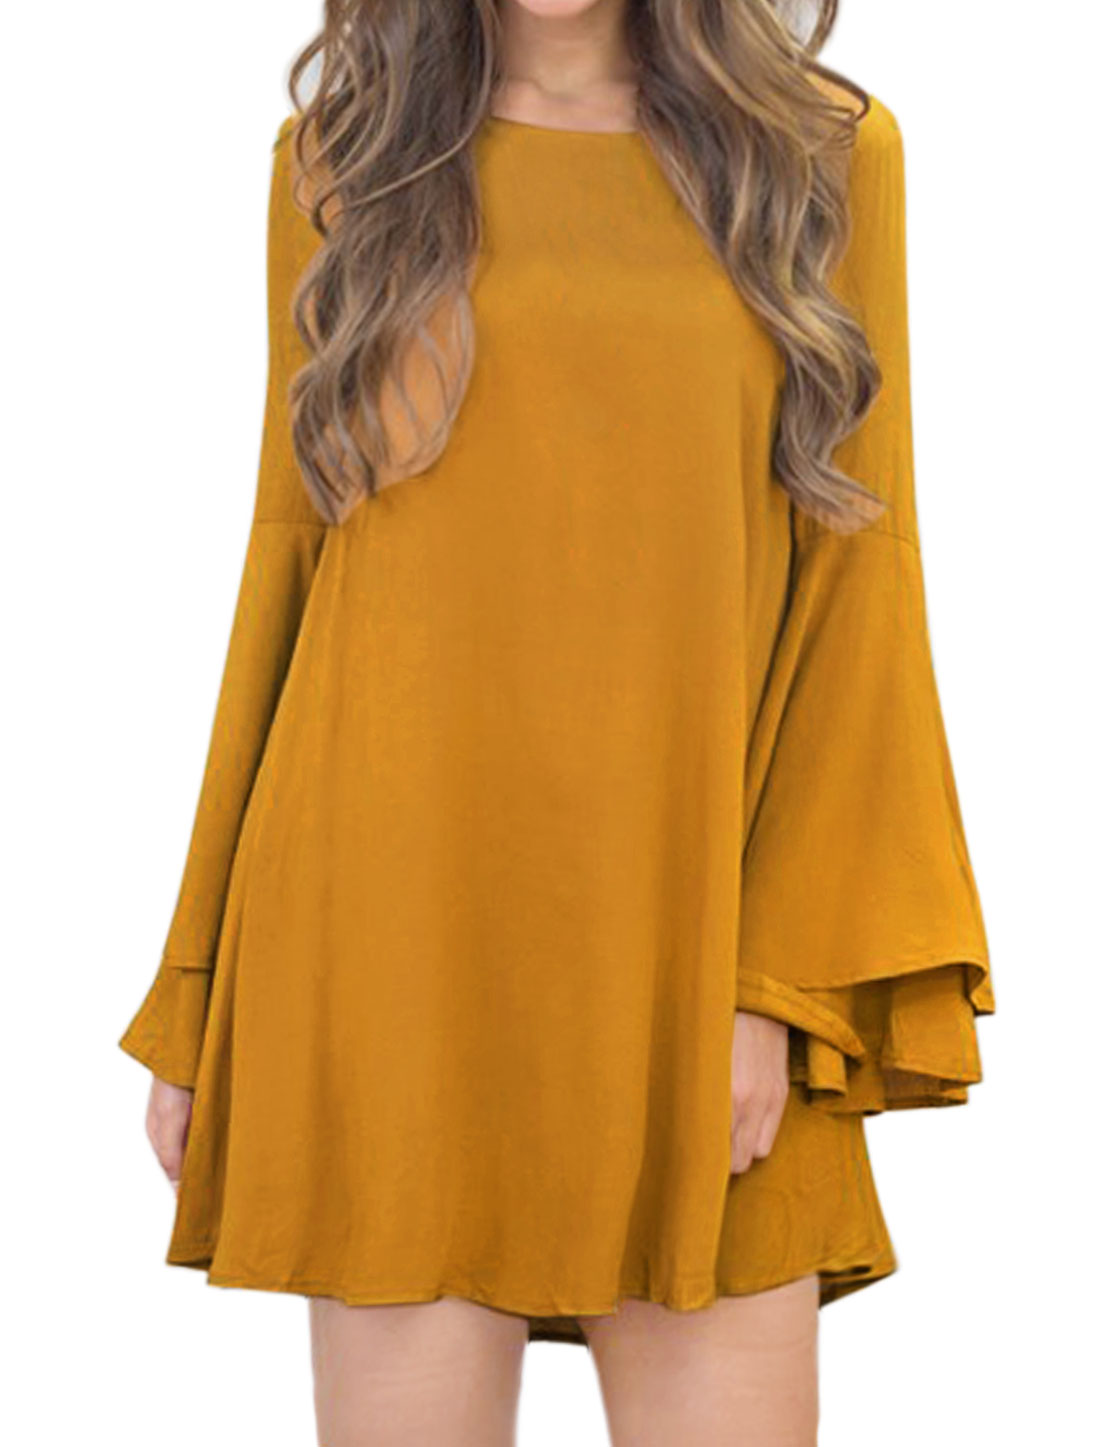 Women Trumpet Sleeves Overlay Cuffs Strappy Back Tunic Dress Yellow M